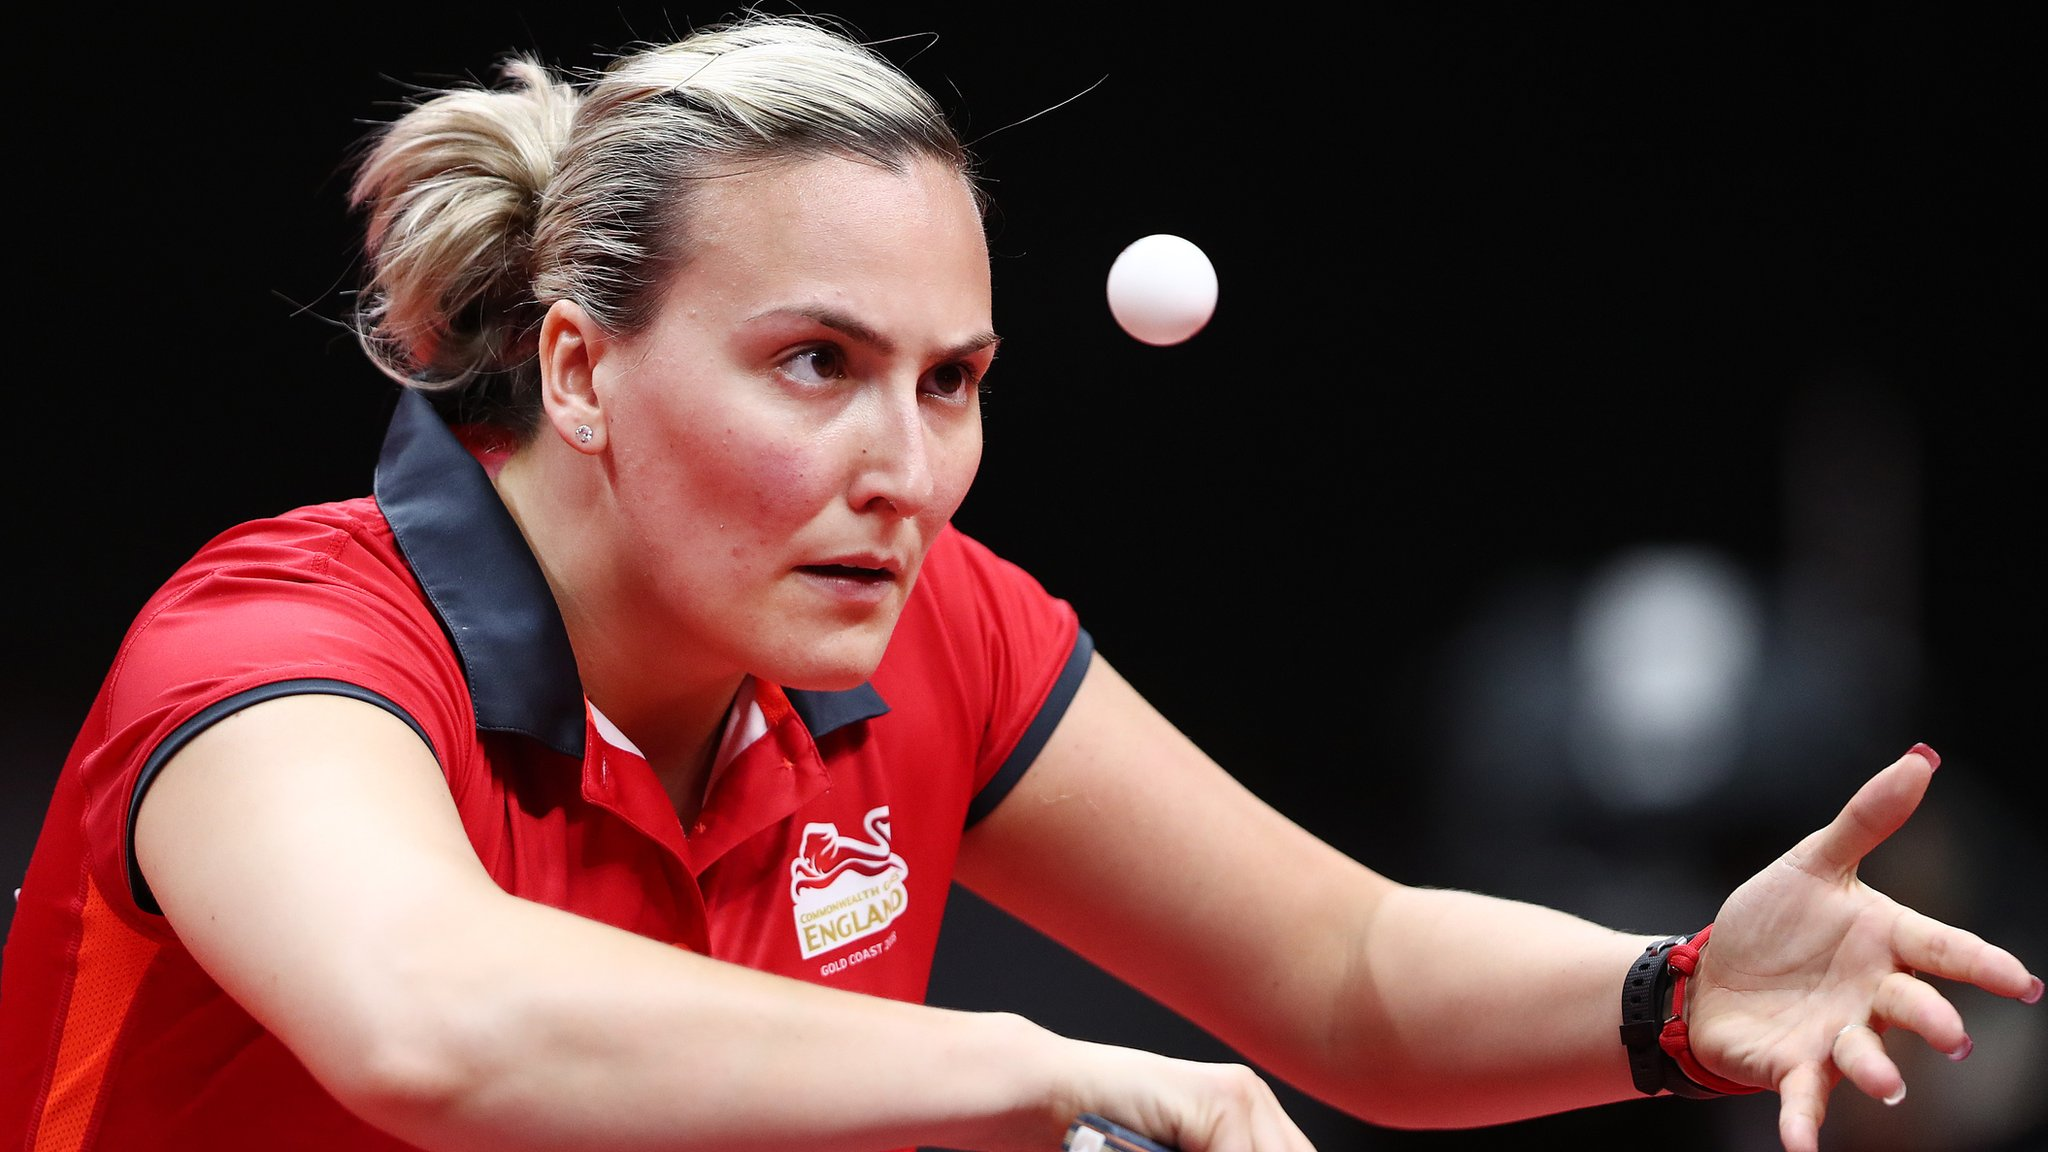 Commonwealth Games medallist Sibley retires from international duty